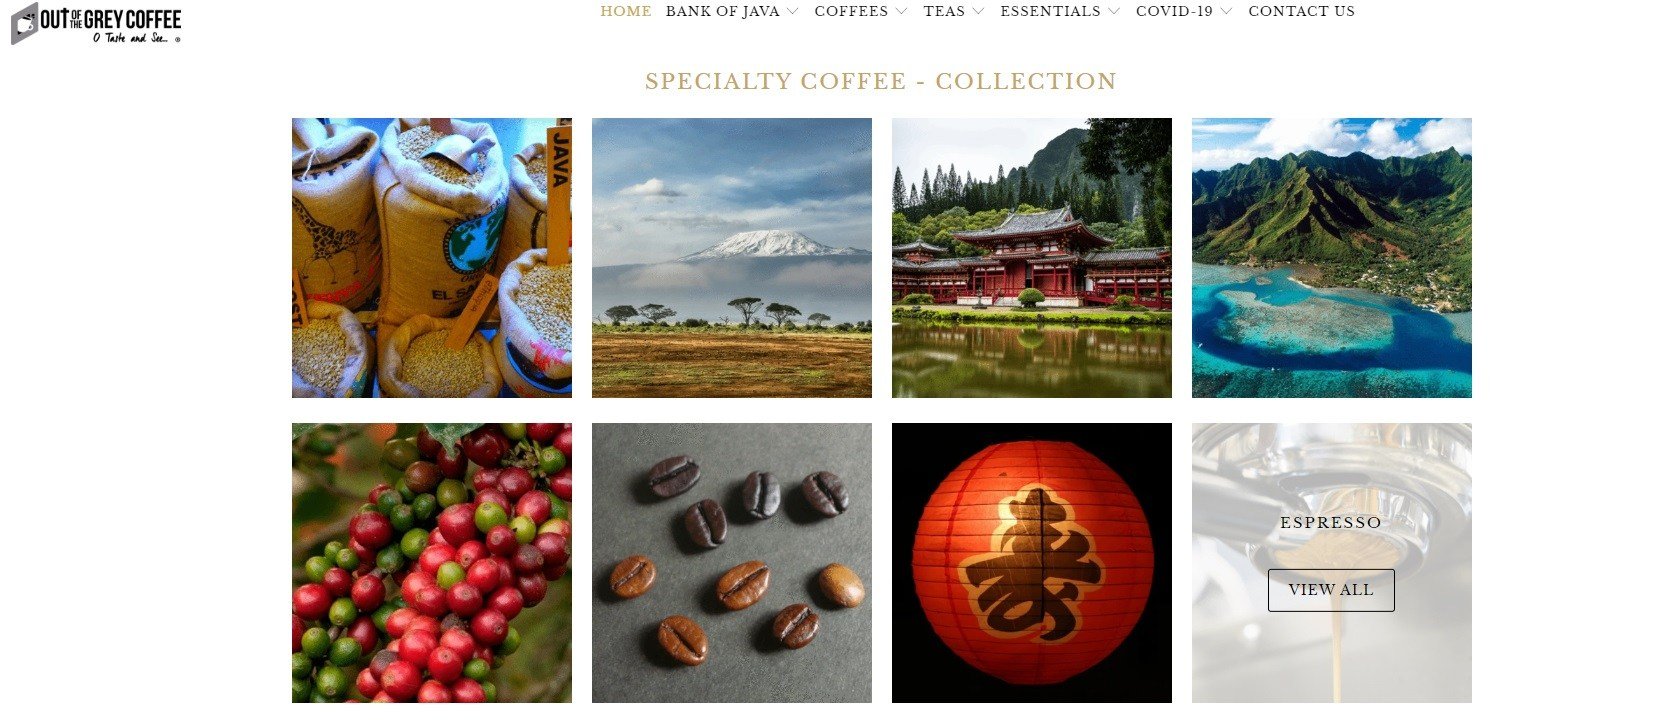 Specialty Coffee - Collection